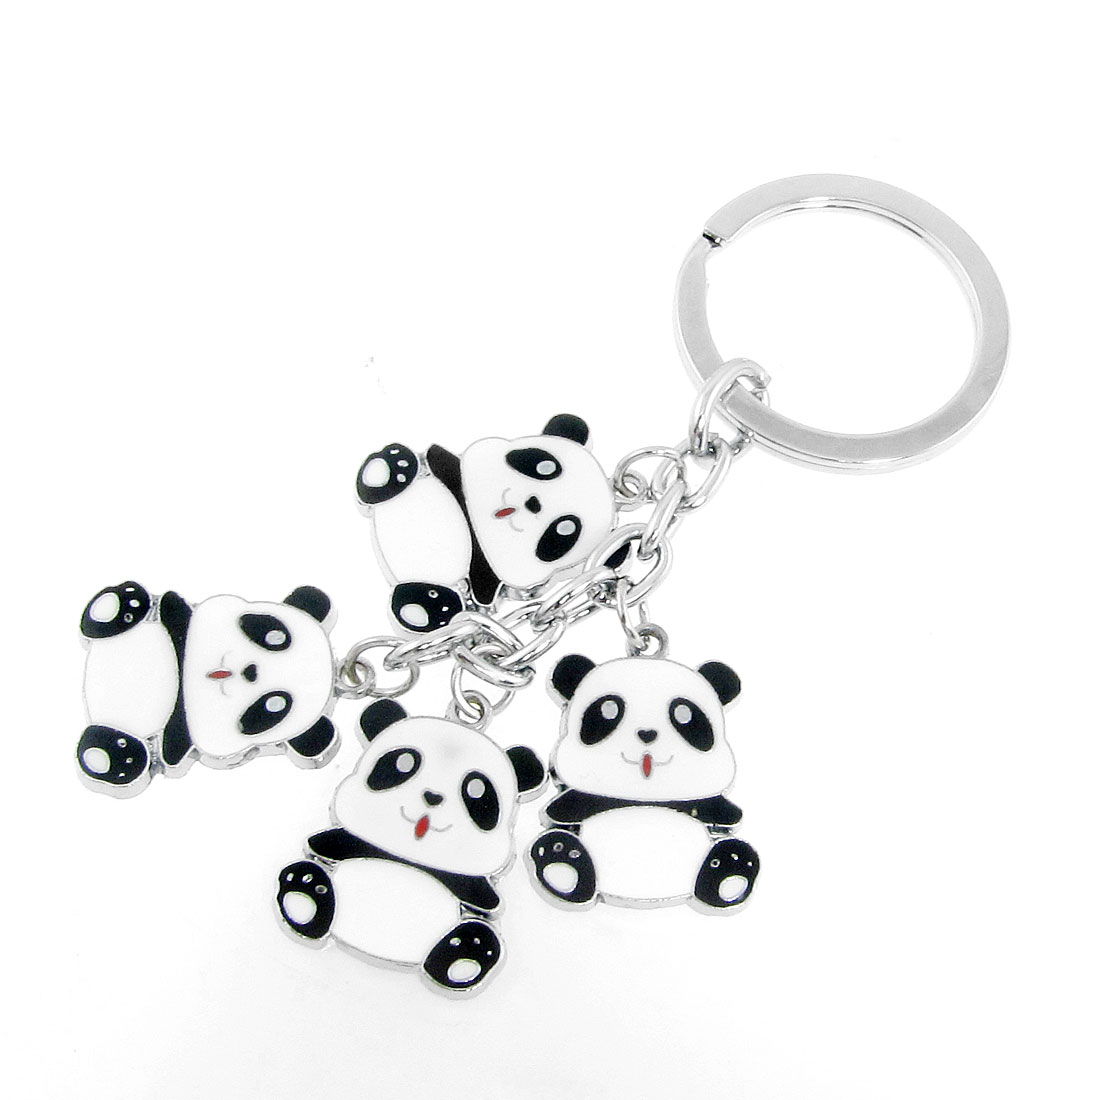 Lady Black White Panda Pendant Handbag Adornment Keys Holder Ring Keychain